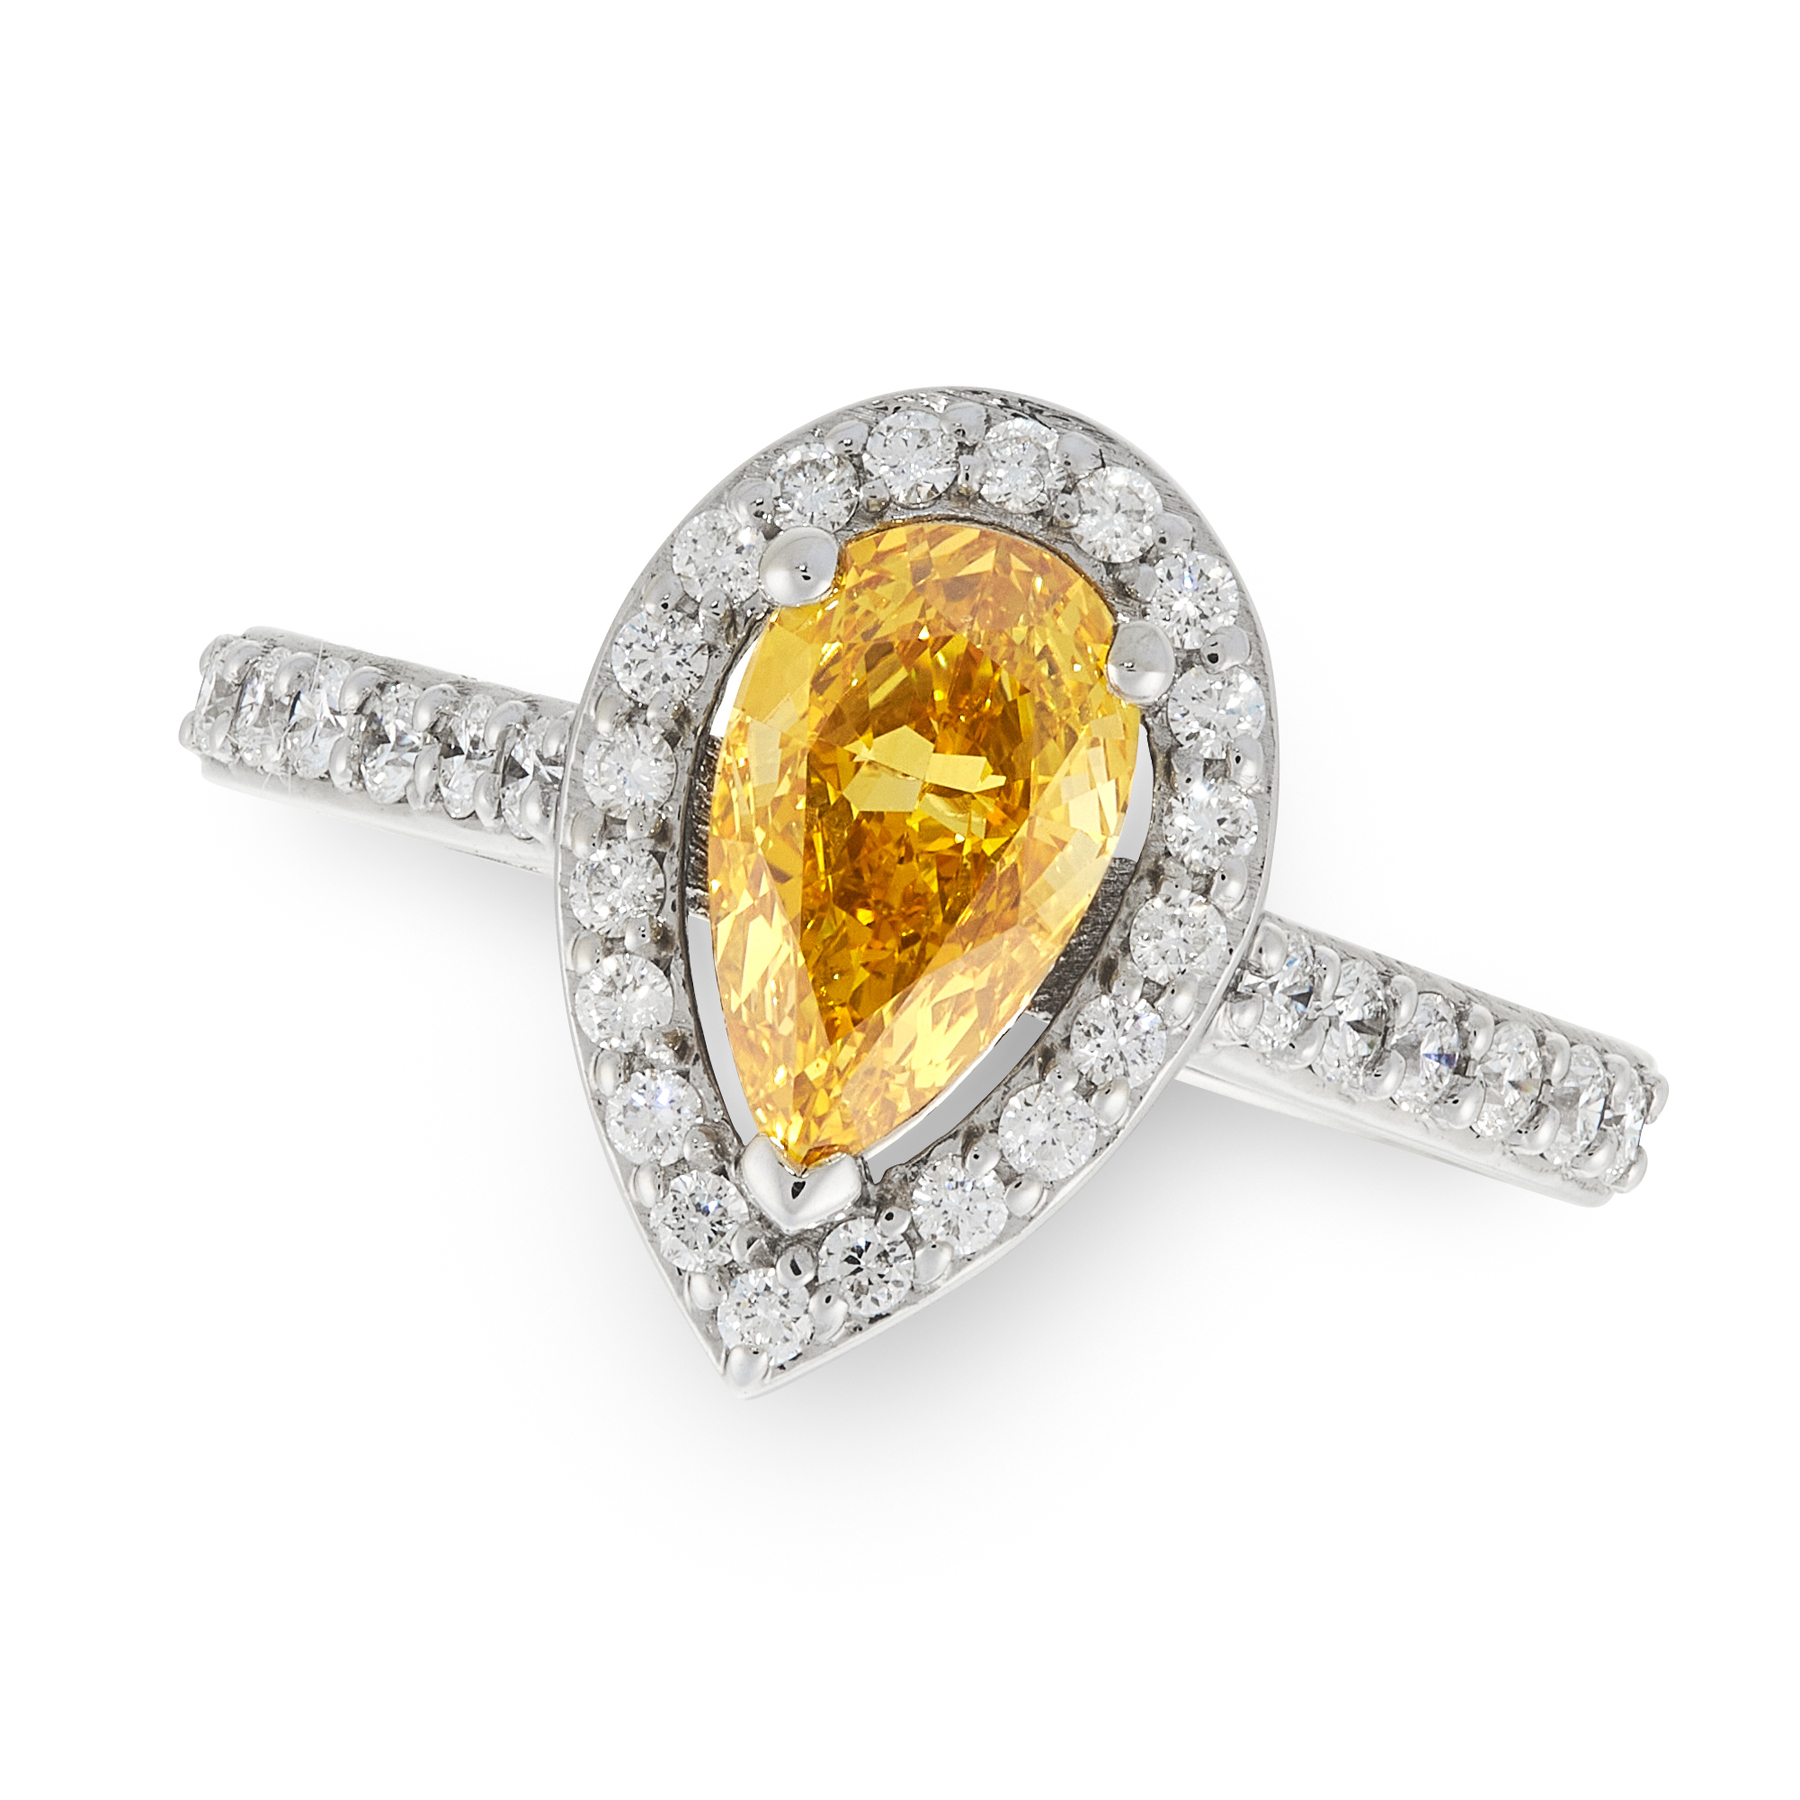 A FANCY INTENSE ORANGE-YELLOW DIAMOND AND WHITE DIAMOND RING in 18ct white gold, set with a pear